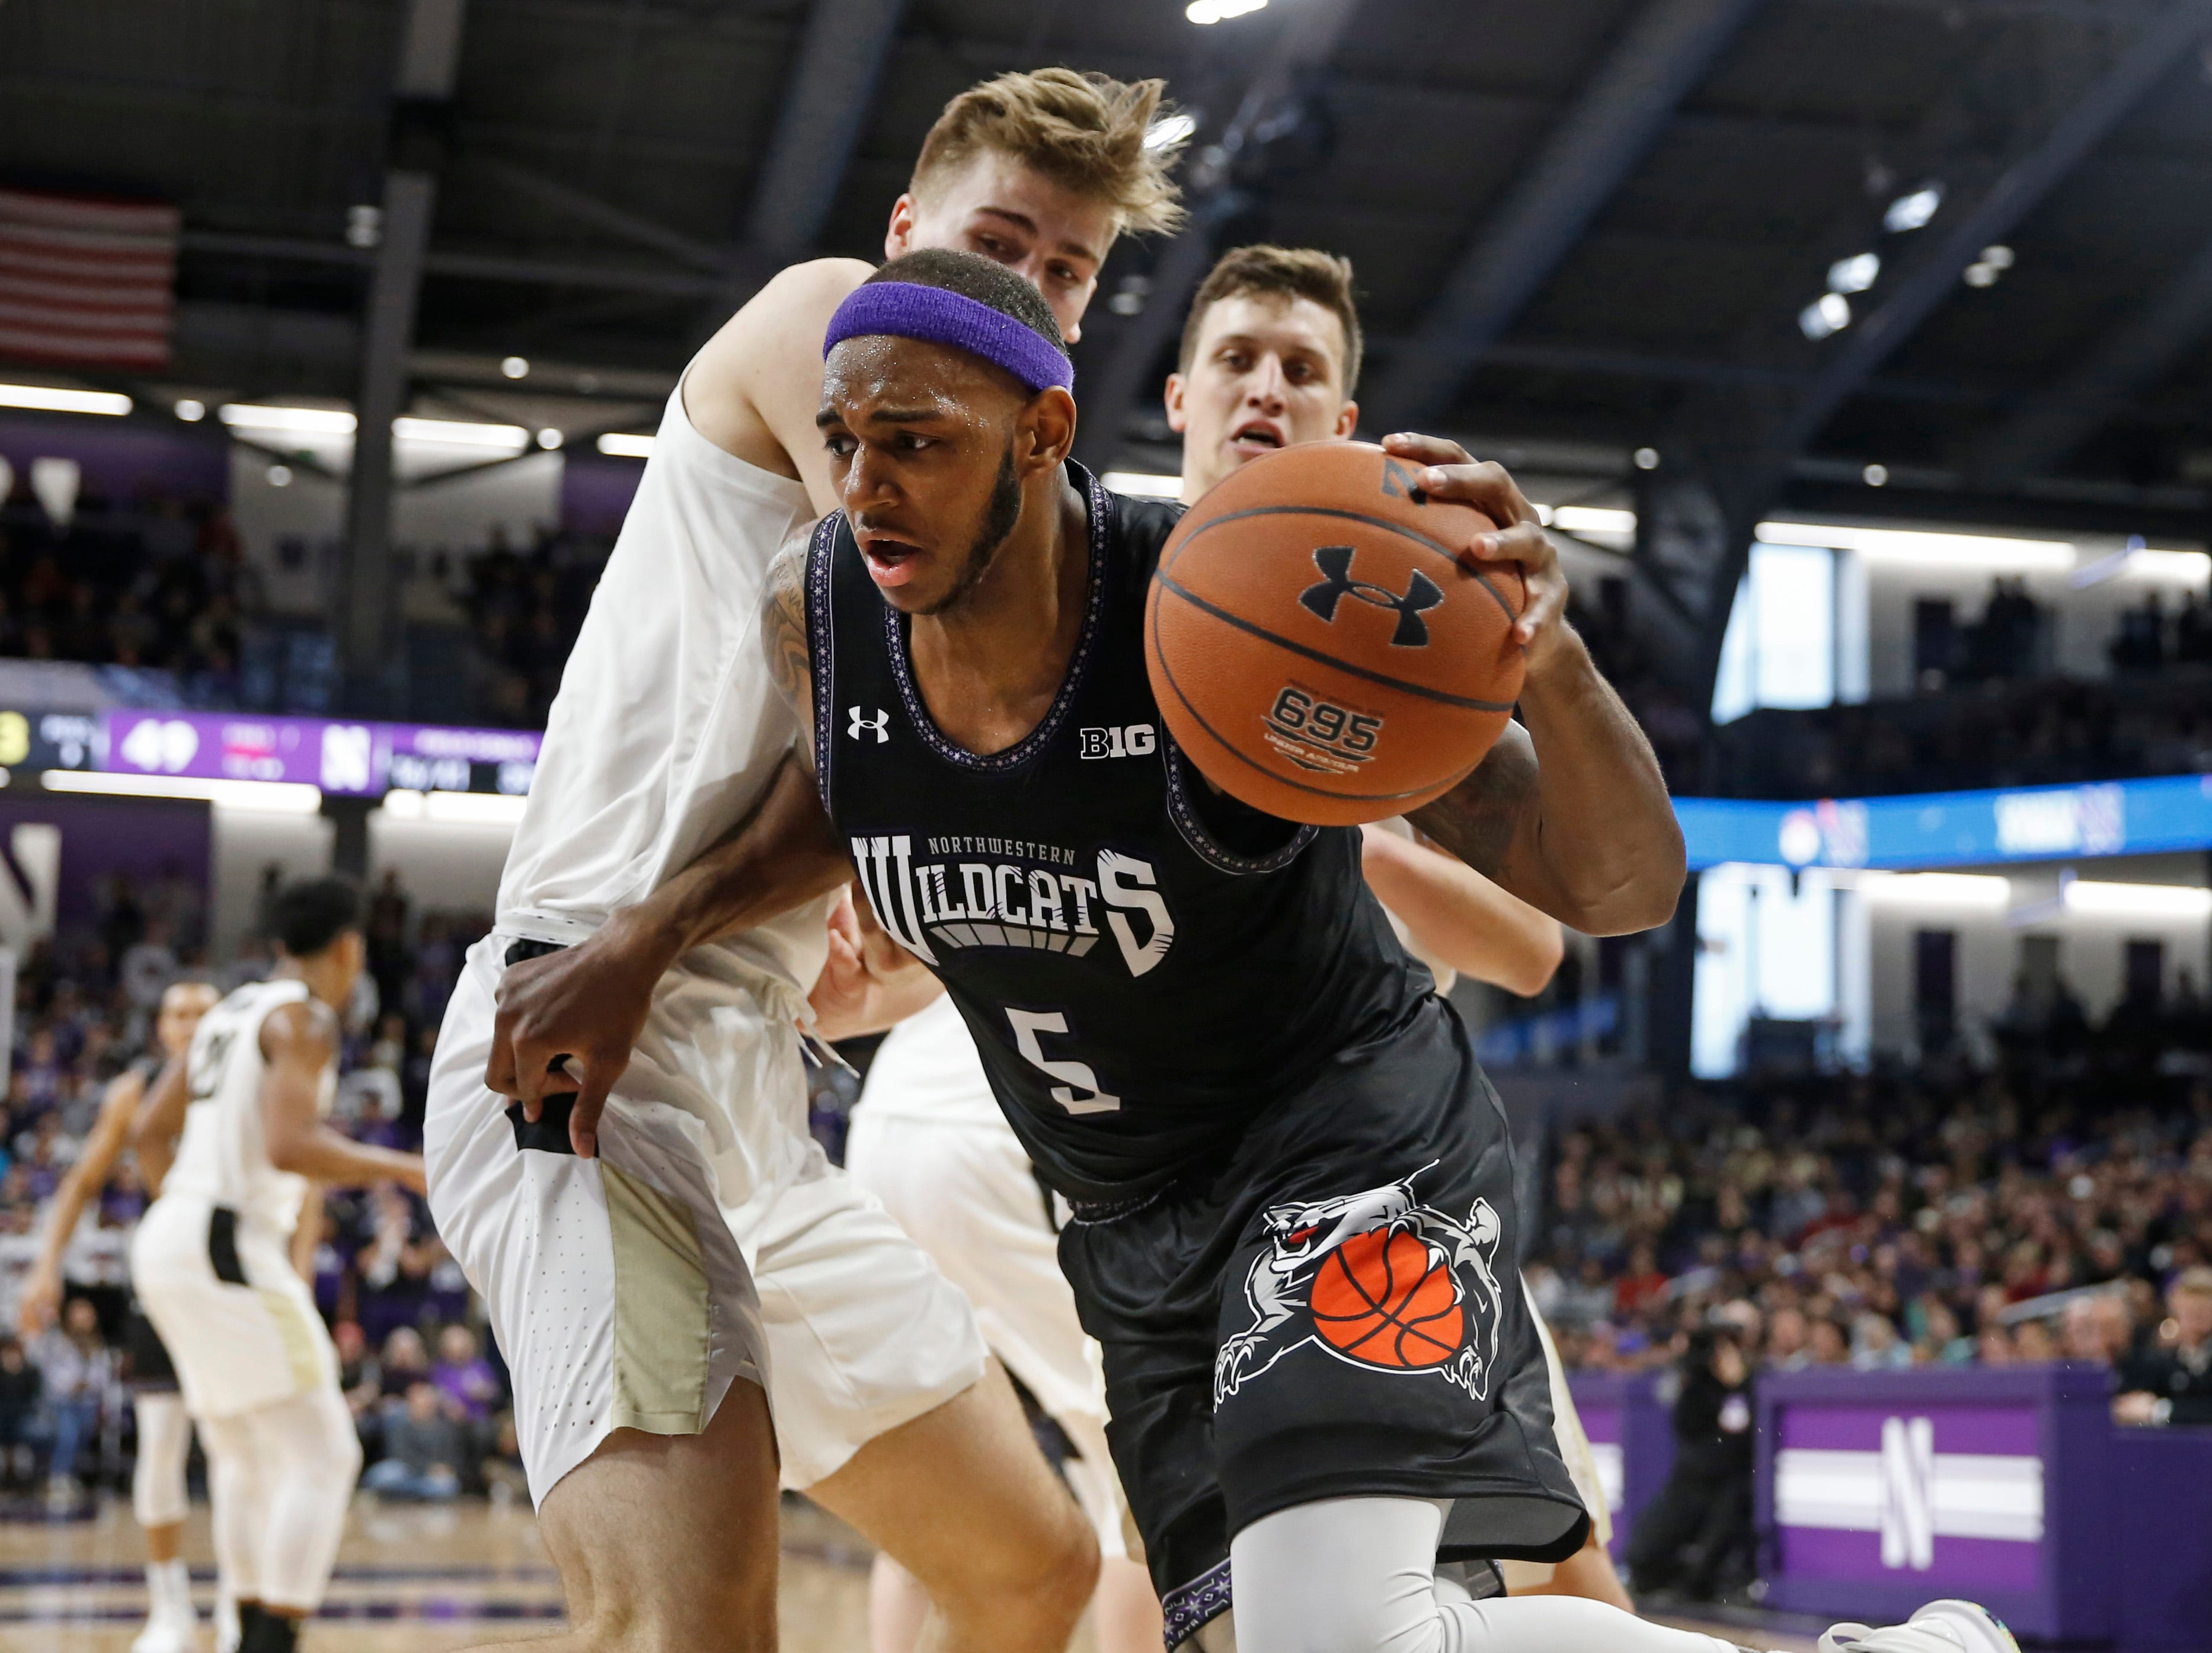 Mar 9, 2019; Evanston, IL, USA; Northwestern Wildcats center Dererk Pardon (5) drives around Purdue Boilermakers center Matt Haarms (left) during the second half at Welsh-Ryan Arena. Mandatory Credit: Nuccio DiNuzzo-USA TODAY Sports